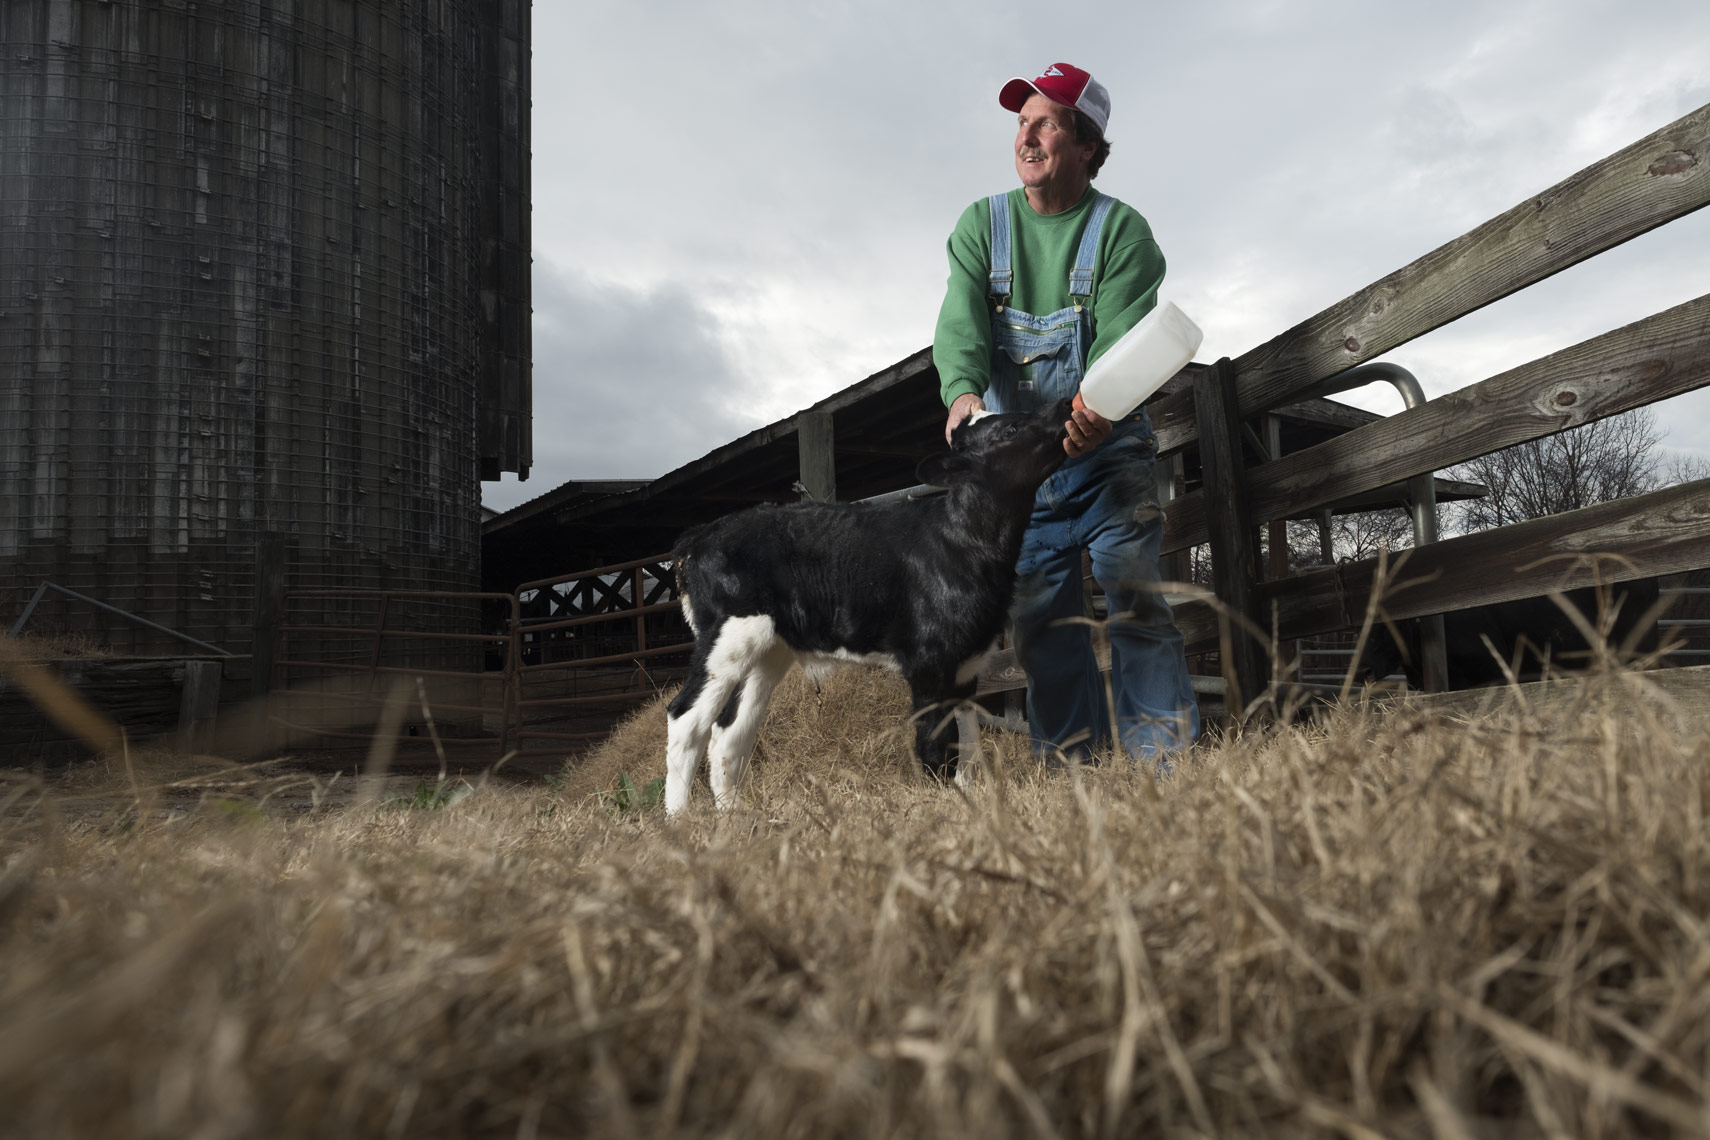 Feeding the Cow in Spartanburg by photographer Ian Curcio